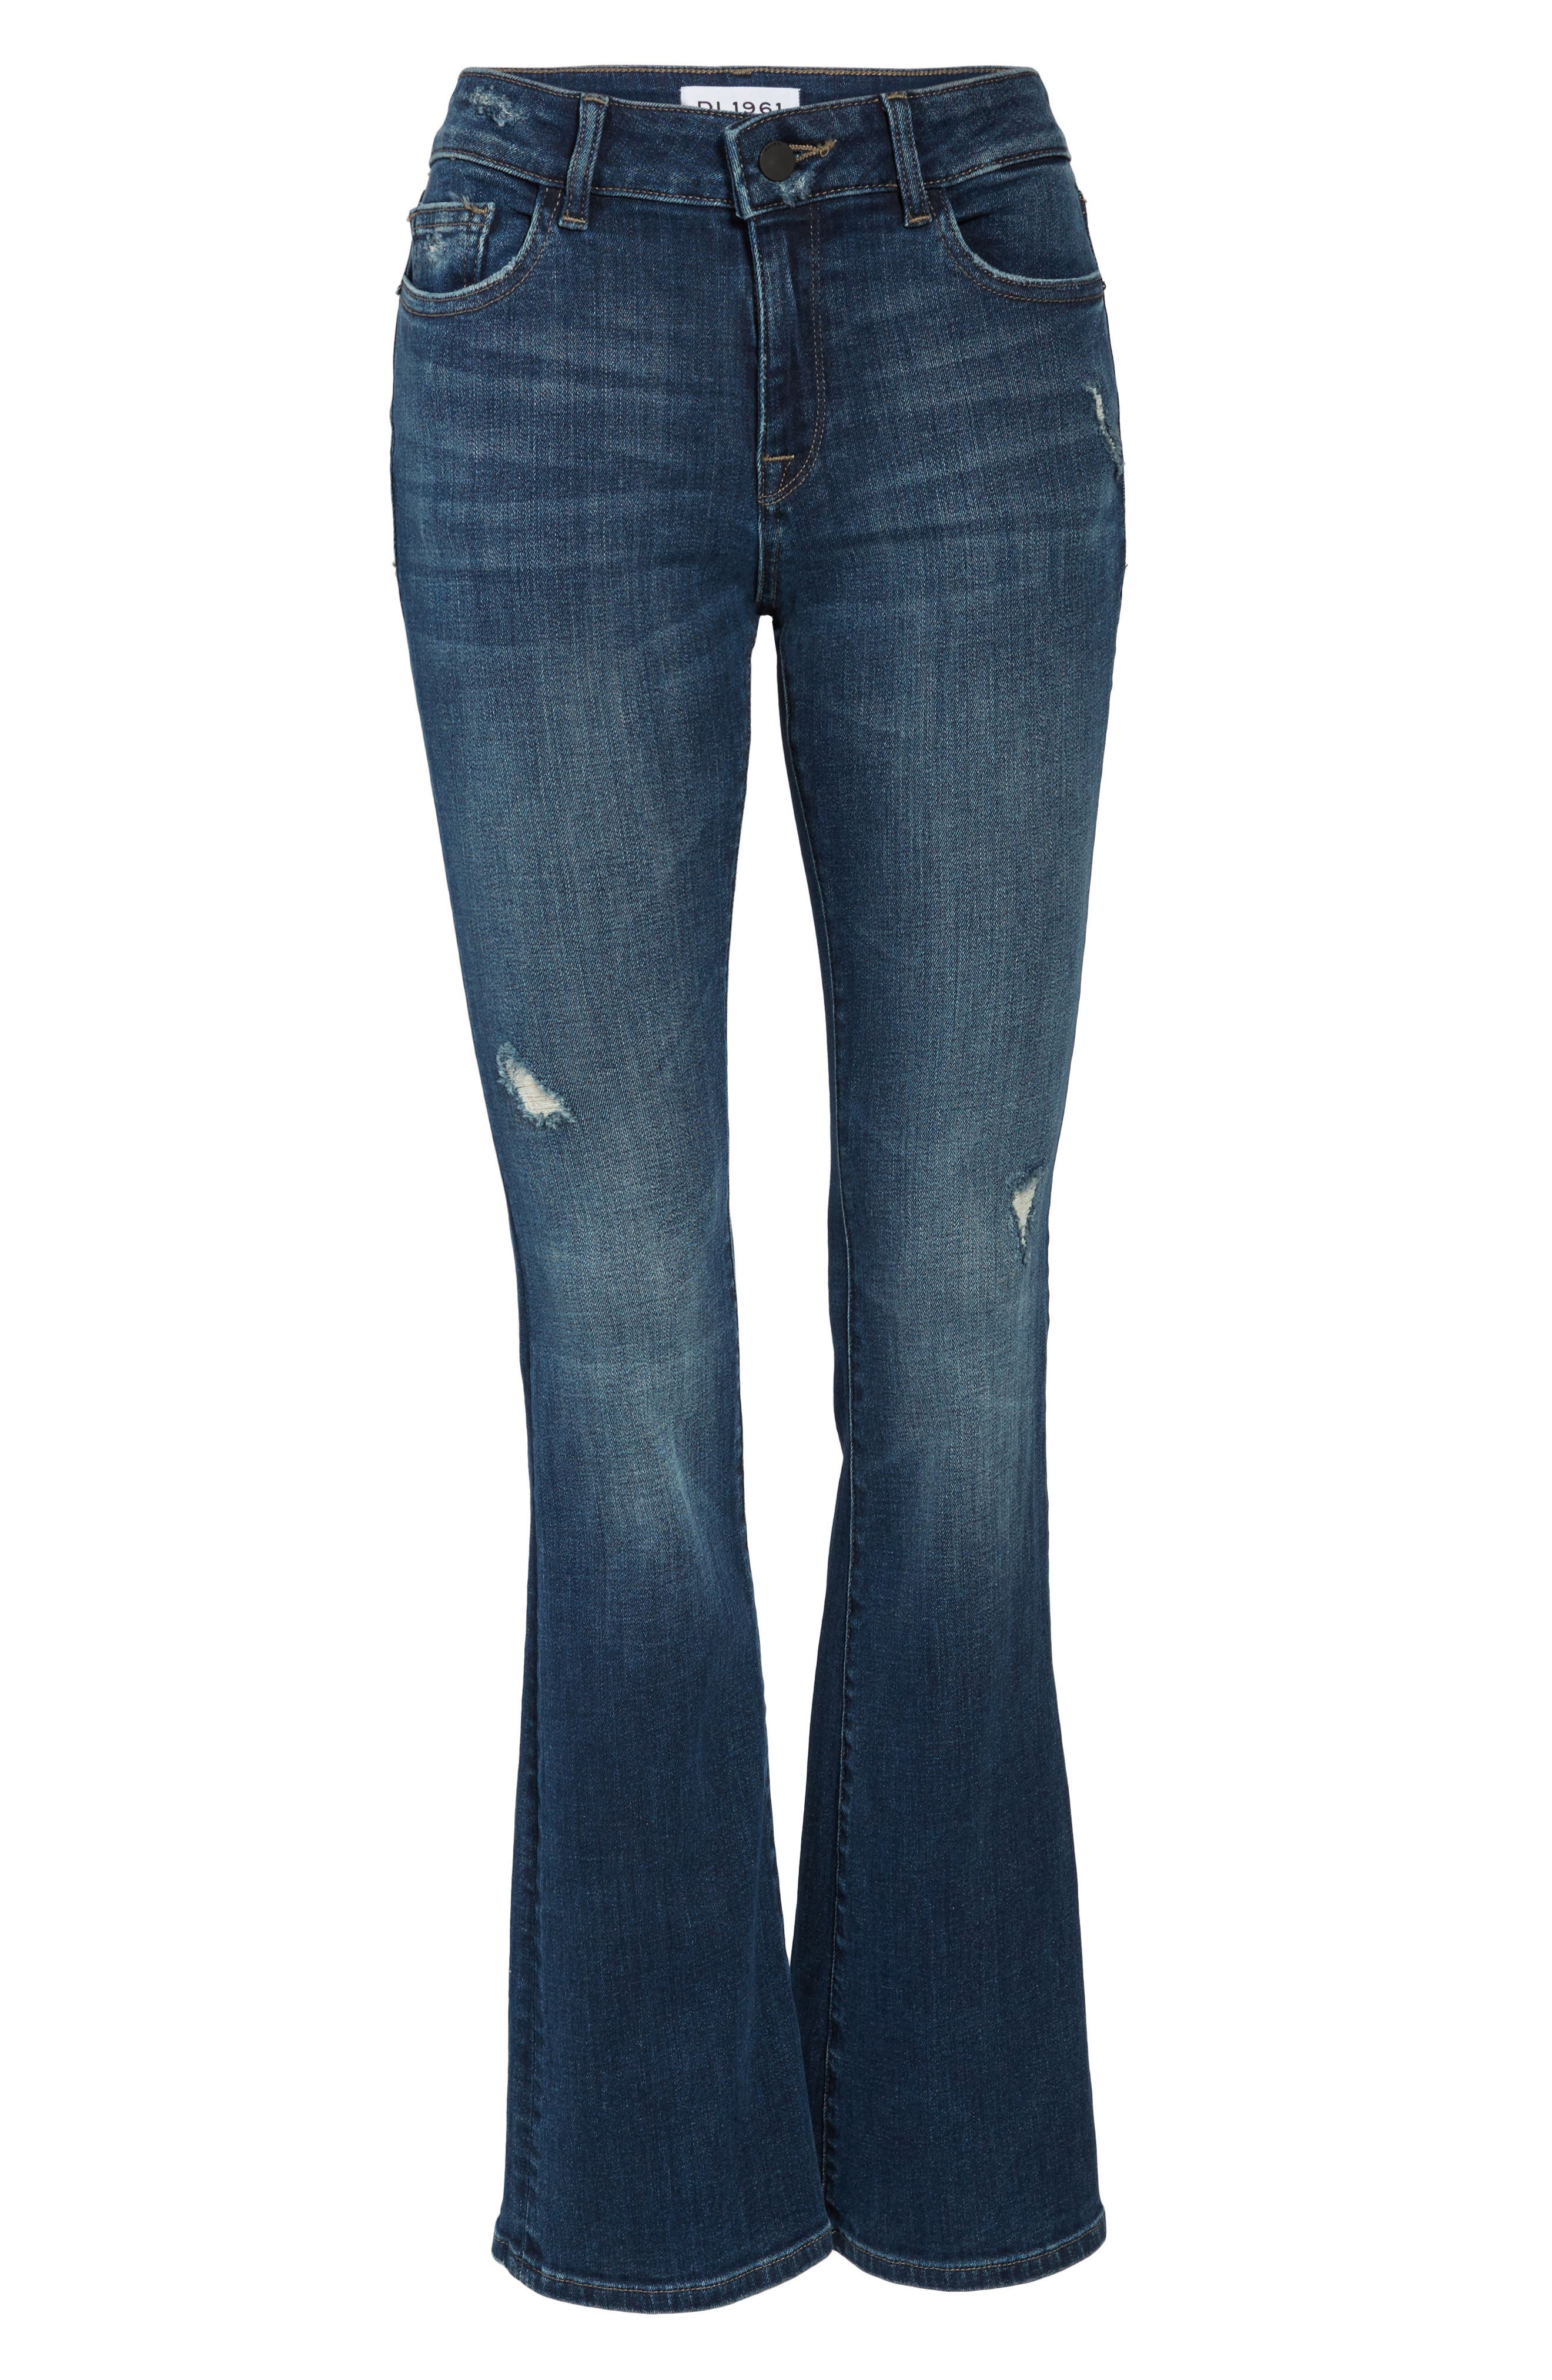 Bridget Bootcut Jeans,                             Alternate thumbnail 6, color,                             425